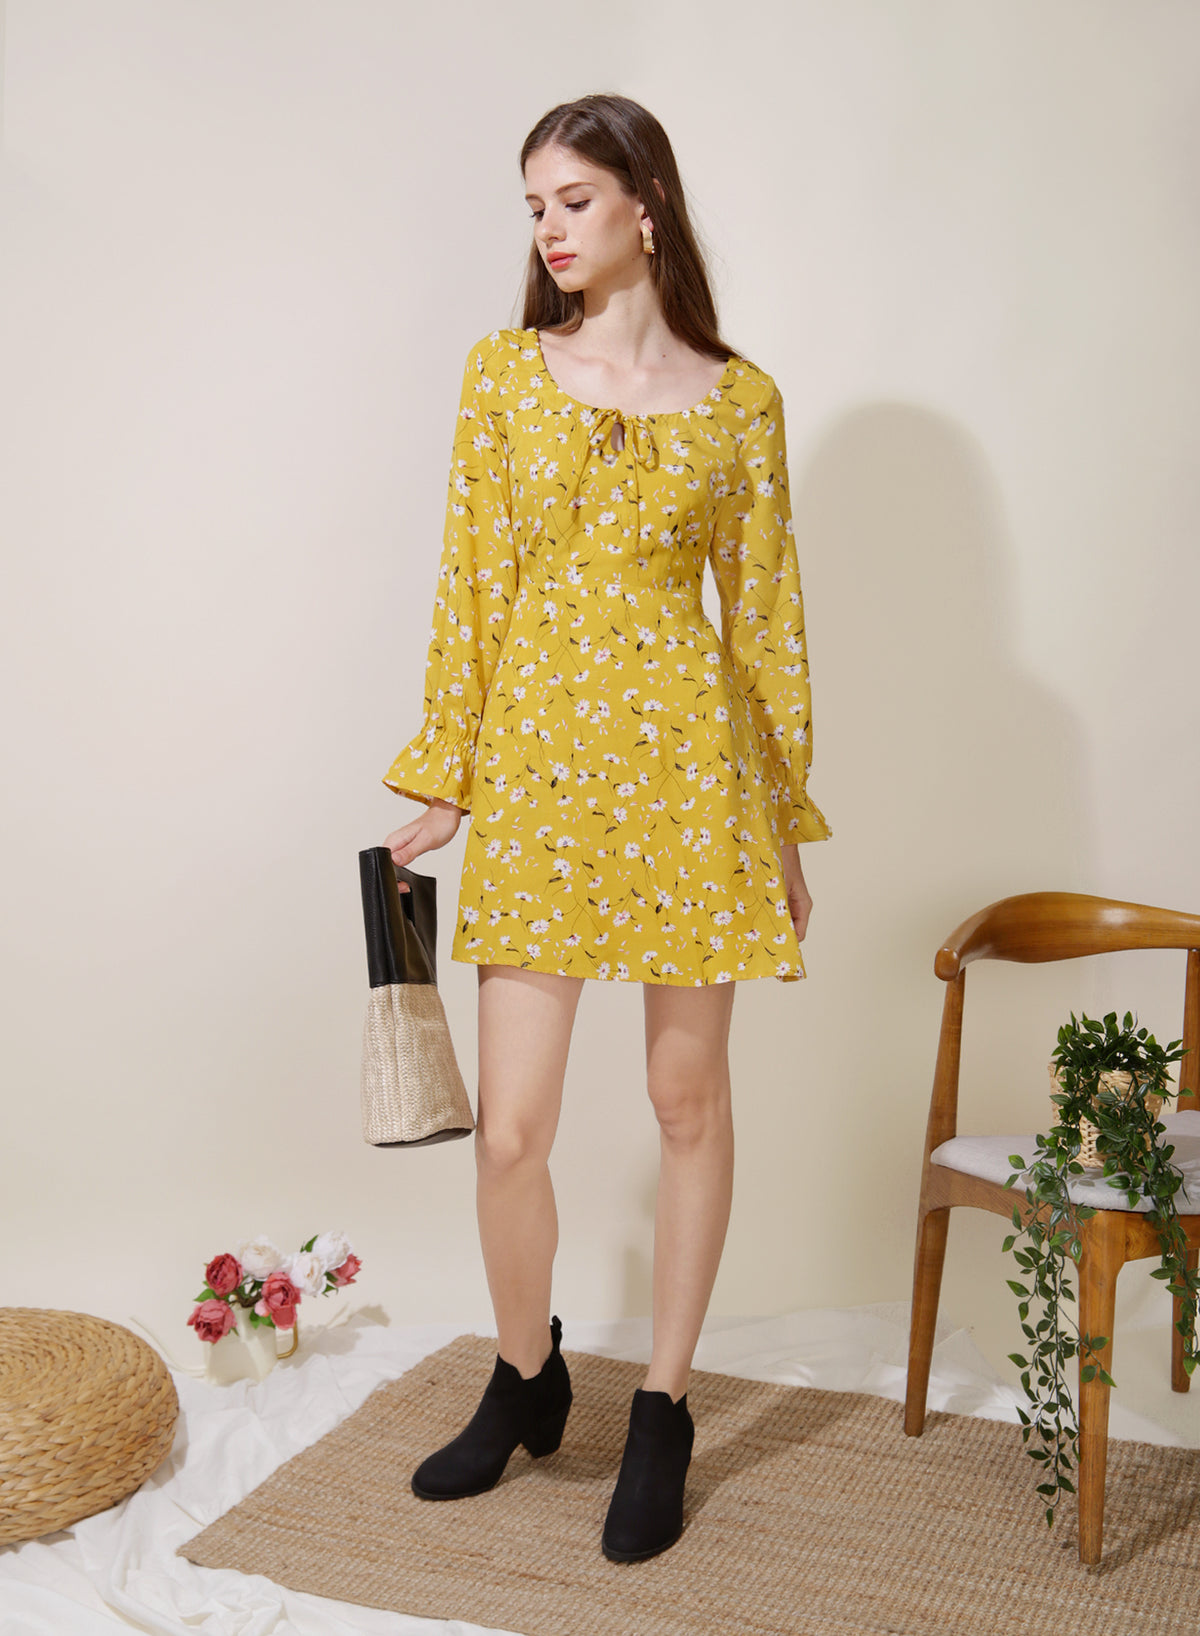 Gallery Tie Front Flared Dress (Floral) at $ 42.50 only sold at And Well Dressed Online Fashion Store Singapore